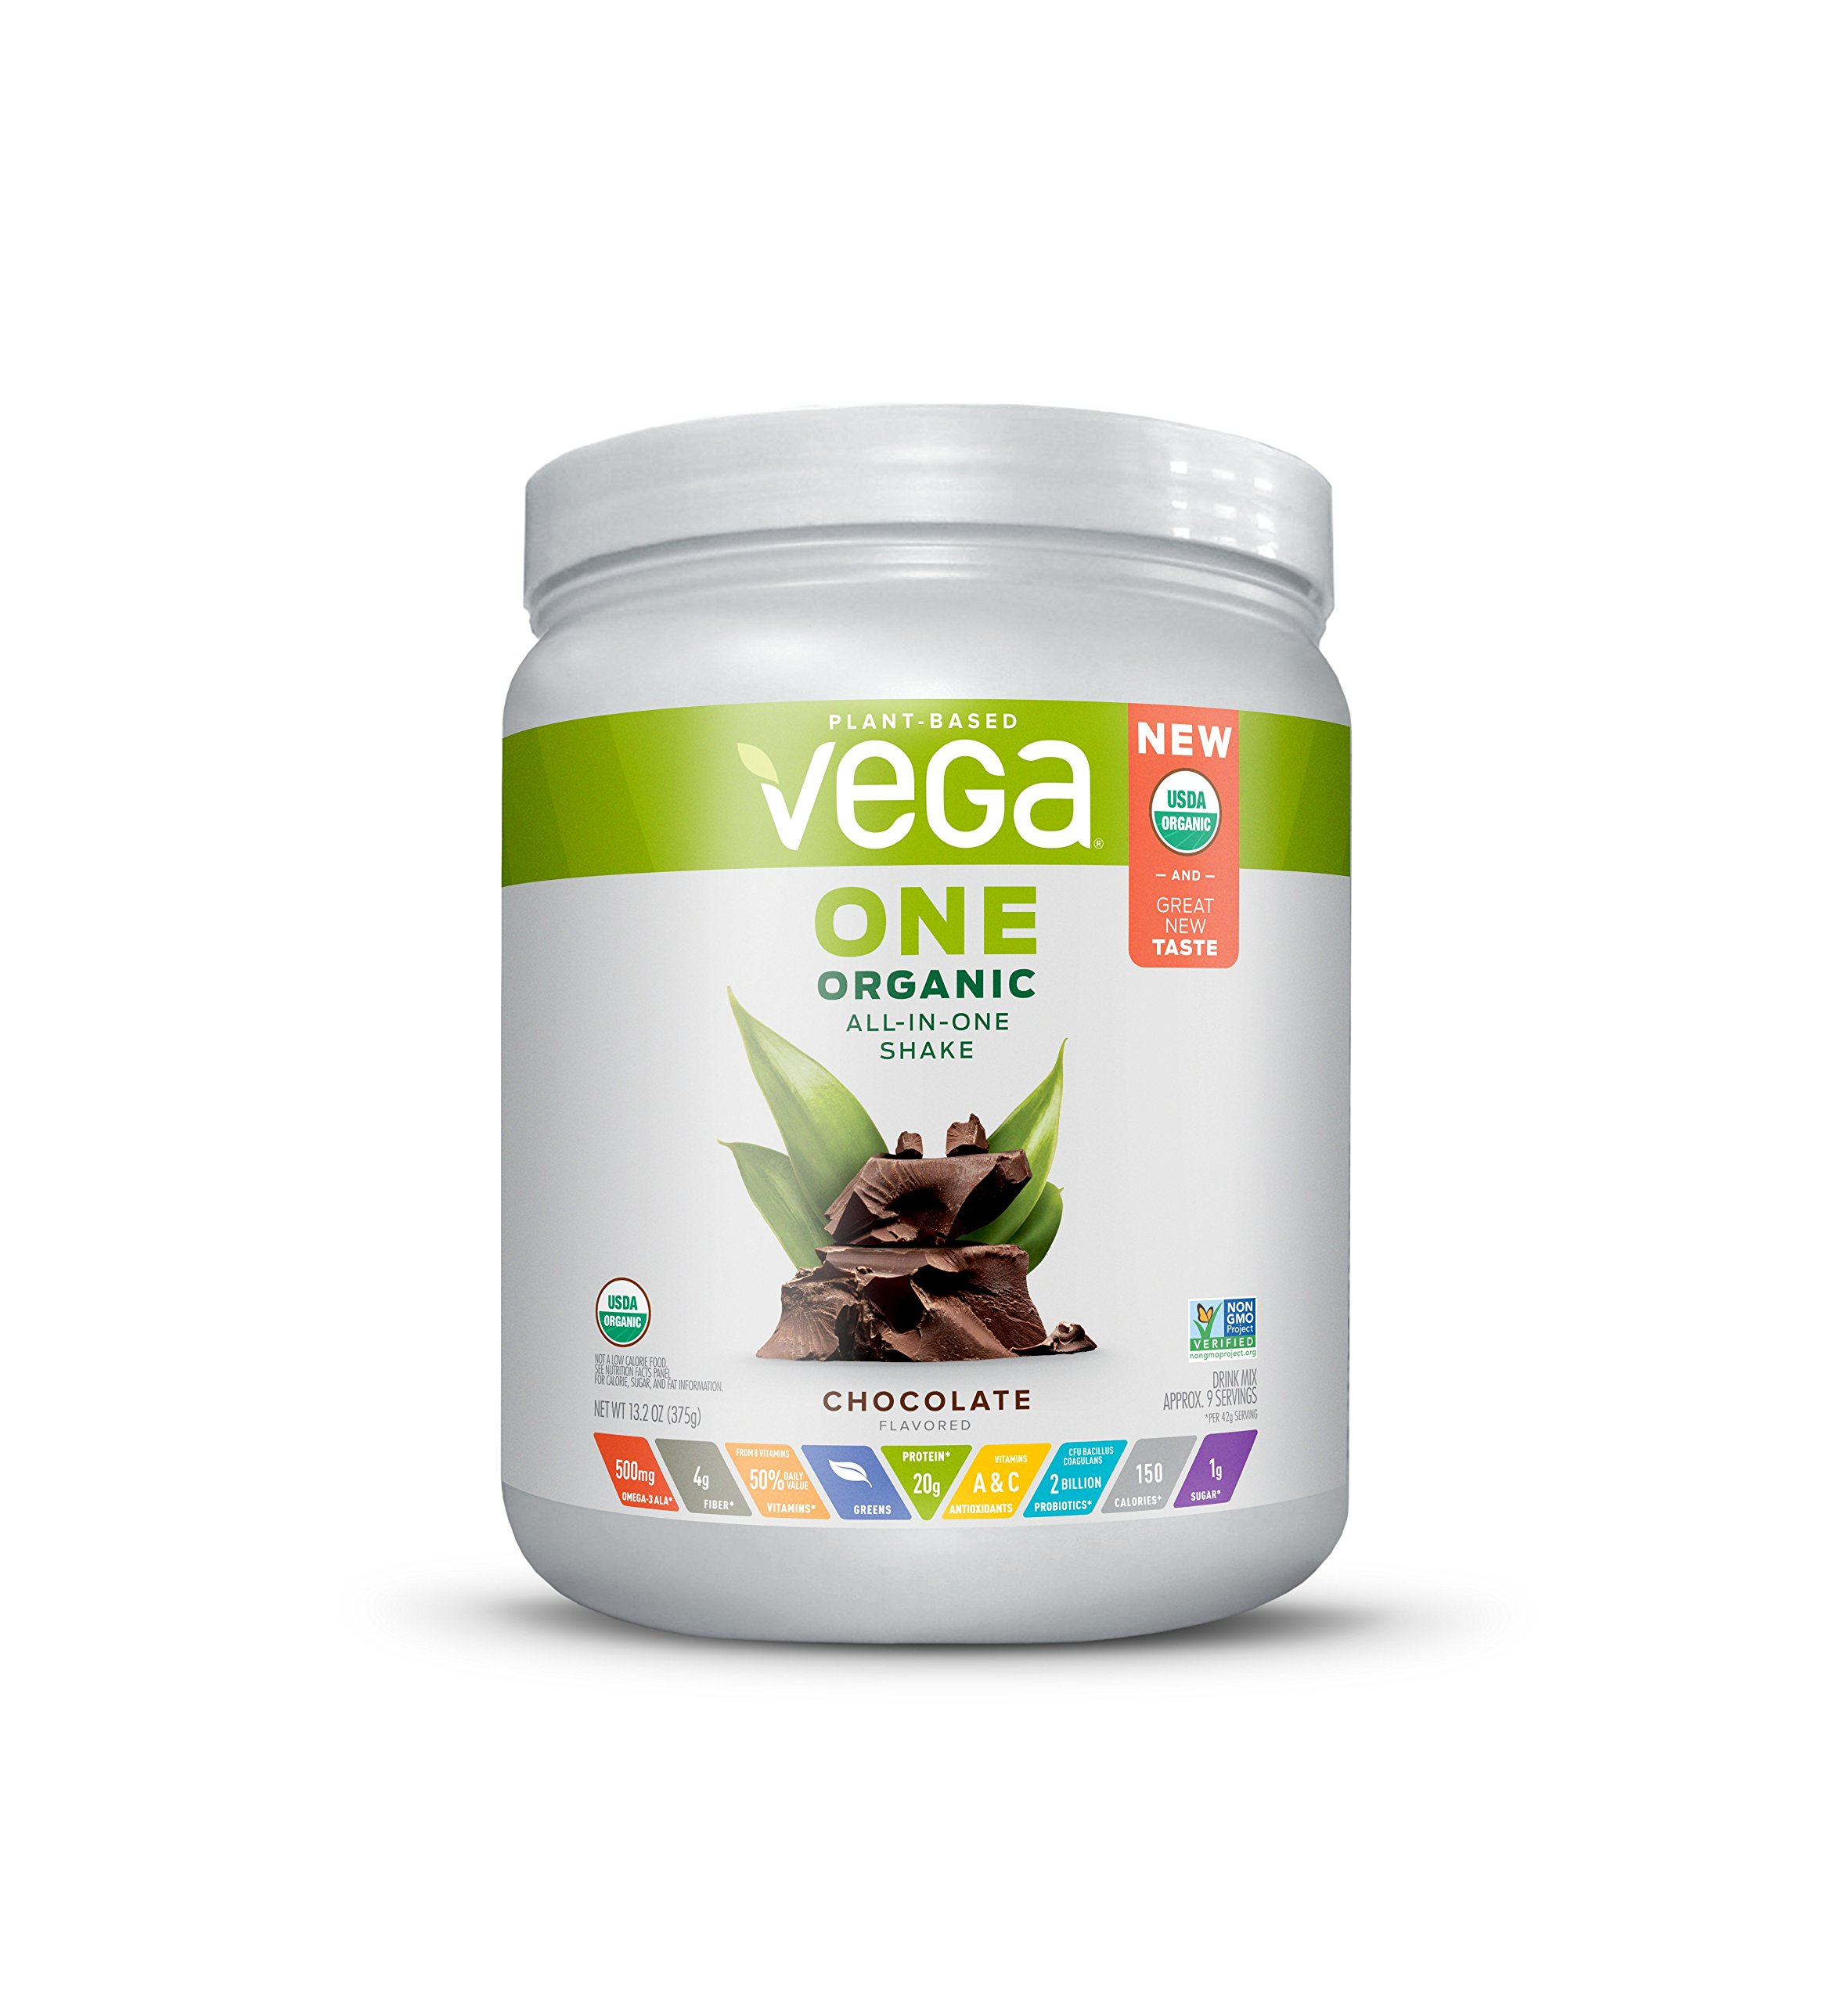 Vega One Organic All-in-One Shake Chocolate (9 servings, 13.2 oz) - Plant Based Vegan Protein Powder, Non Dairy, Gluten Free, Non GMO